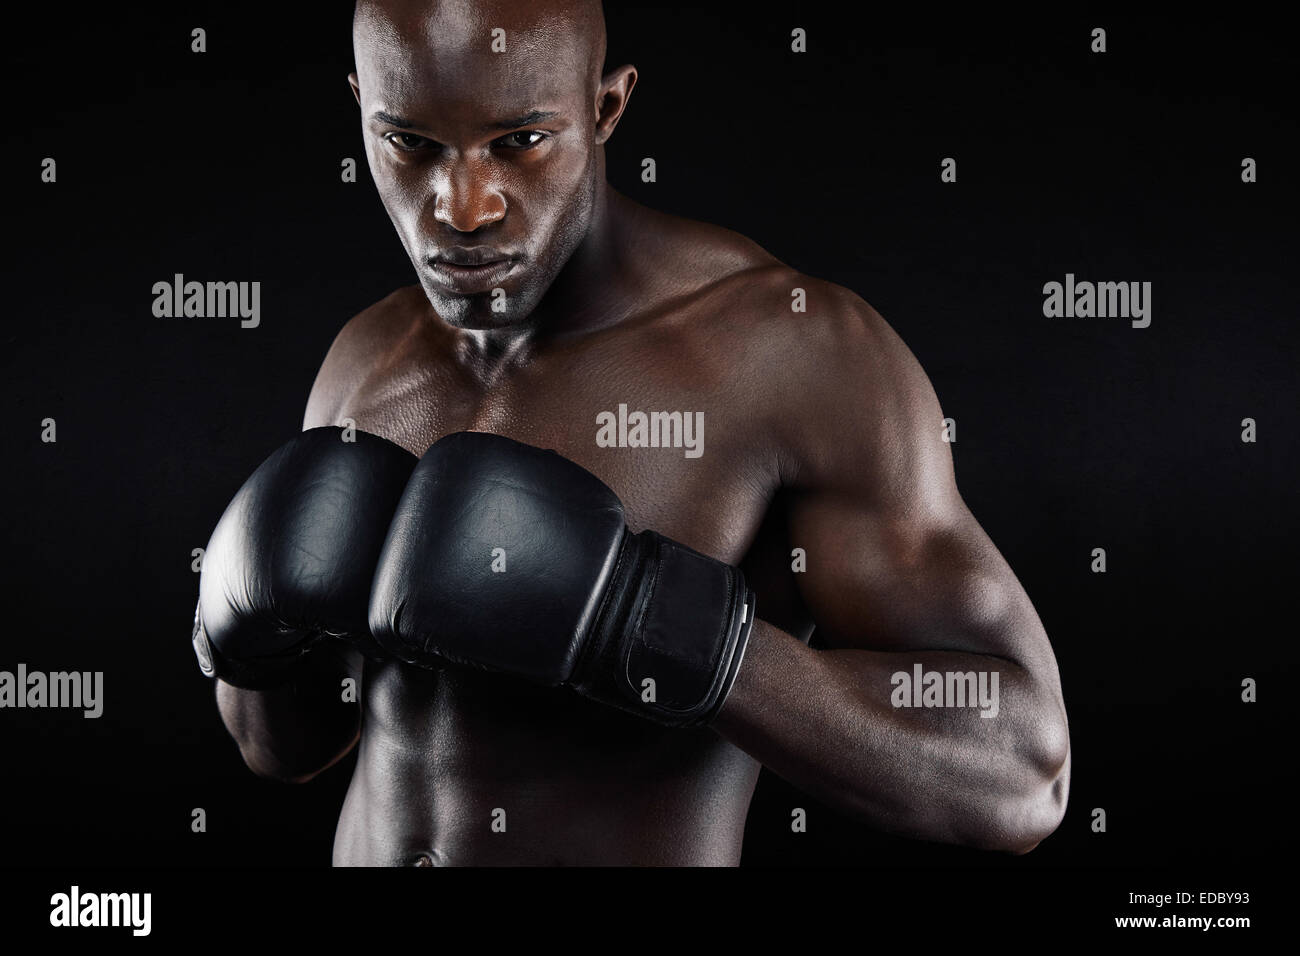 Powerful boxer posing and looking tough against black background. African muscular man practicing boxing workout. - Stock Image